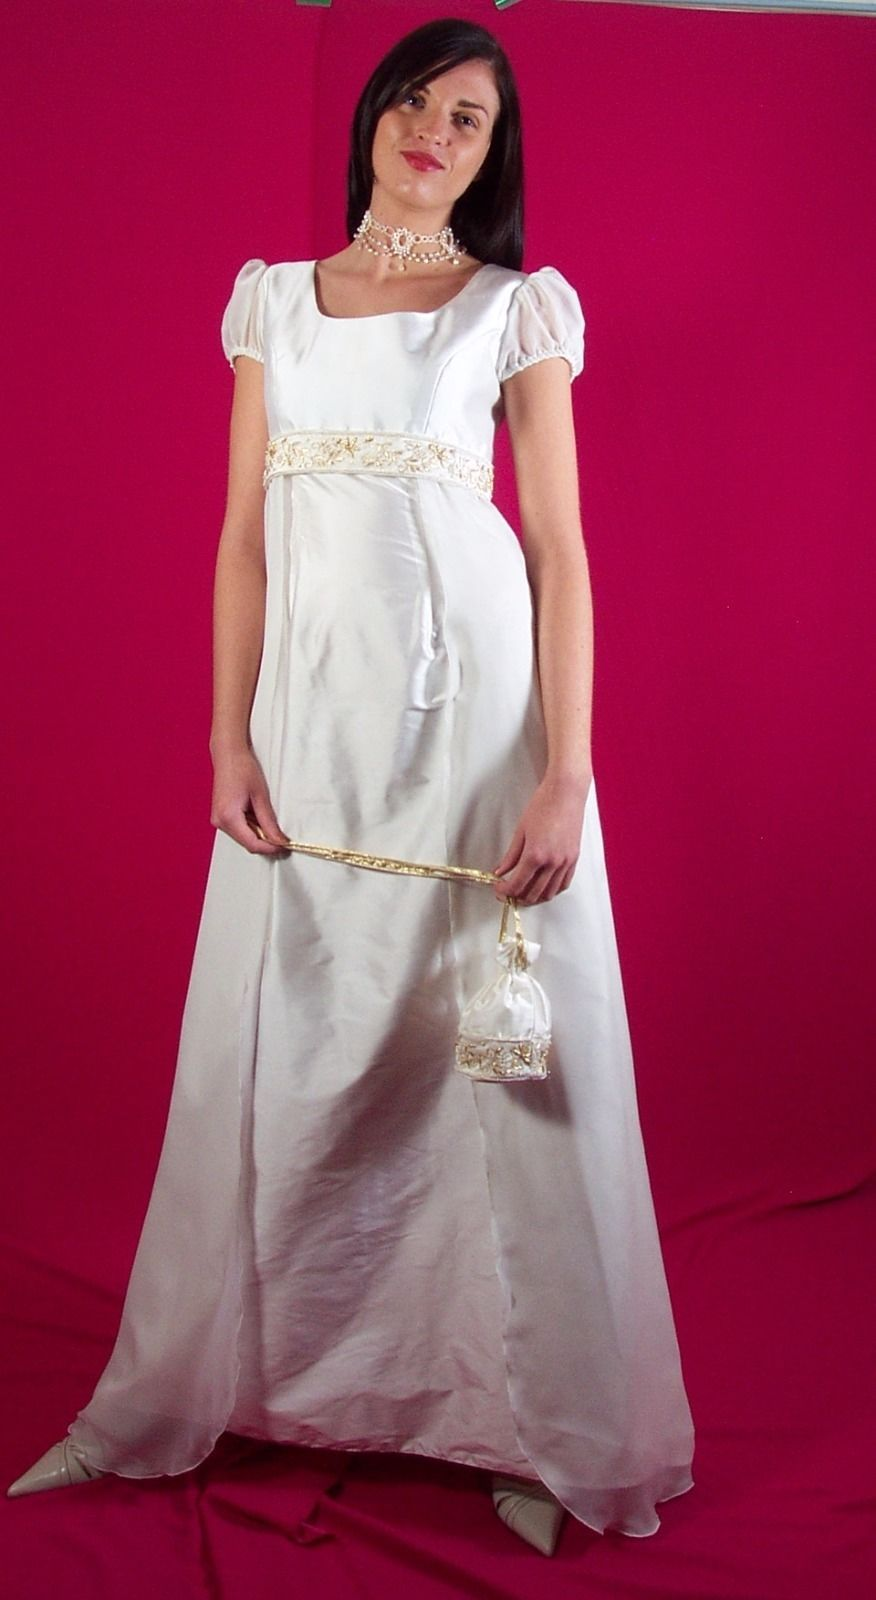 Silk dupoin designer wedding dress ebay wedding dress